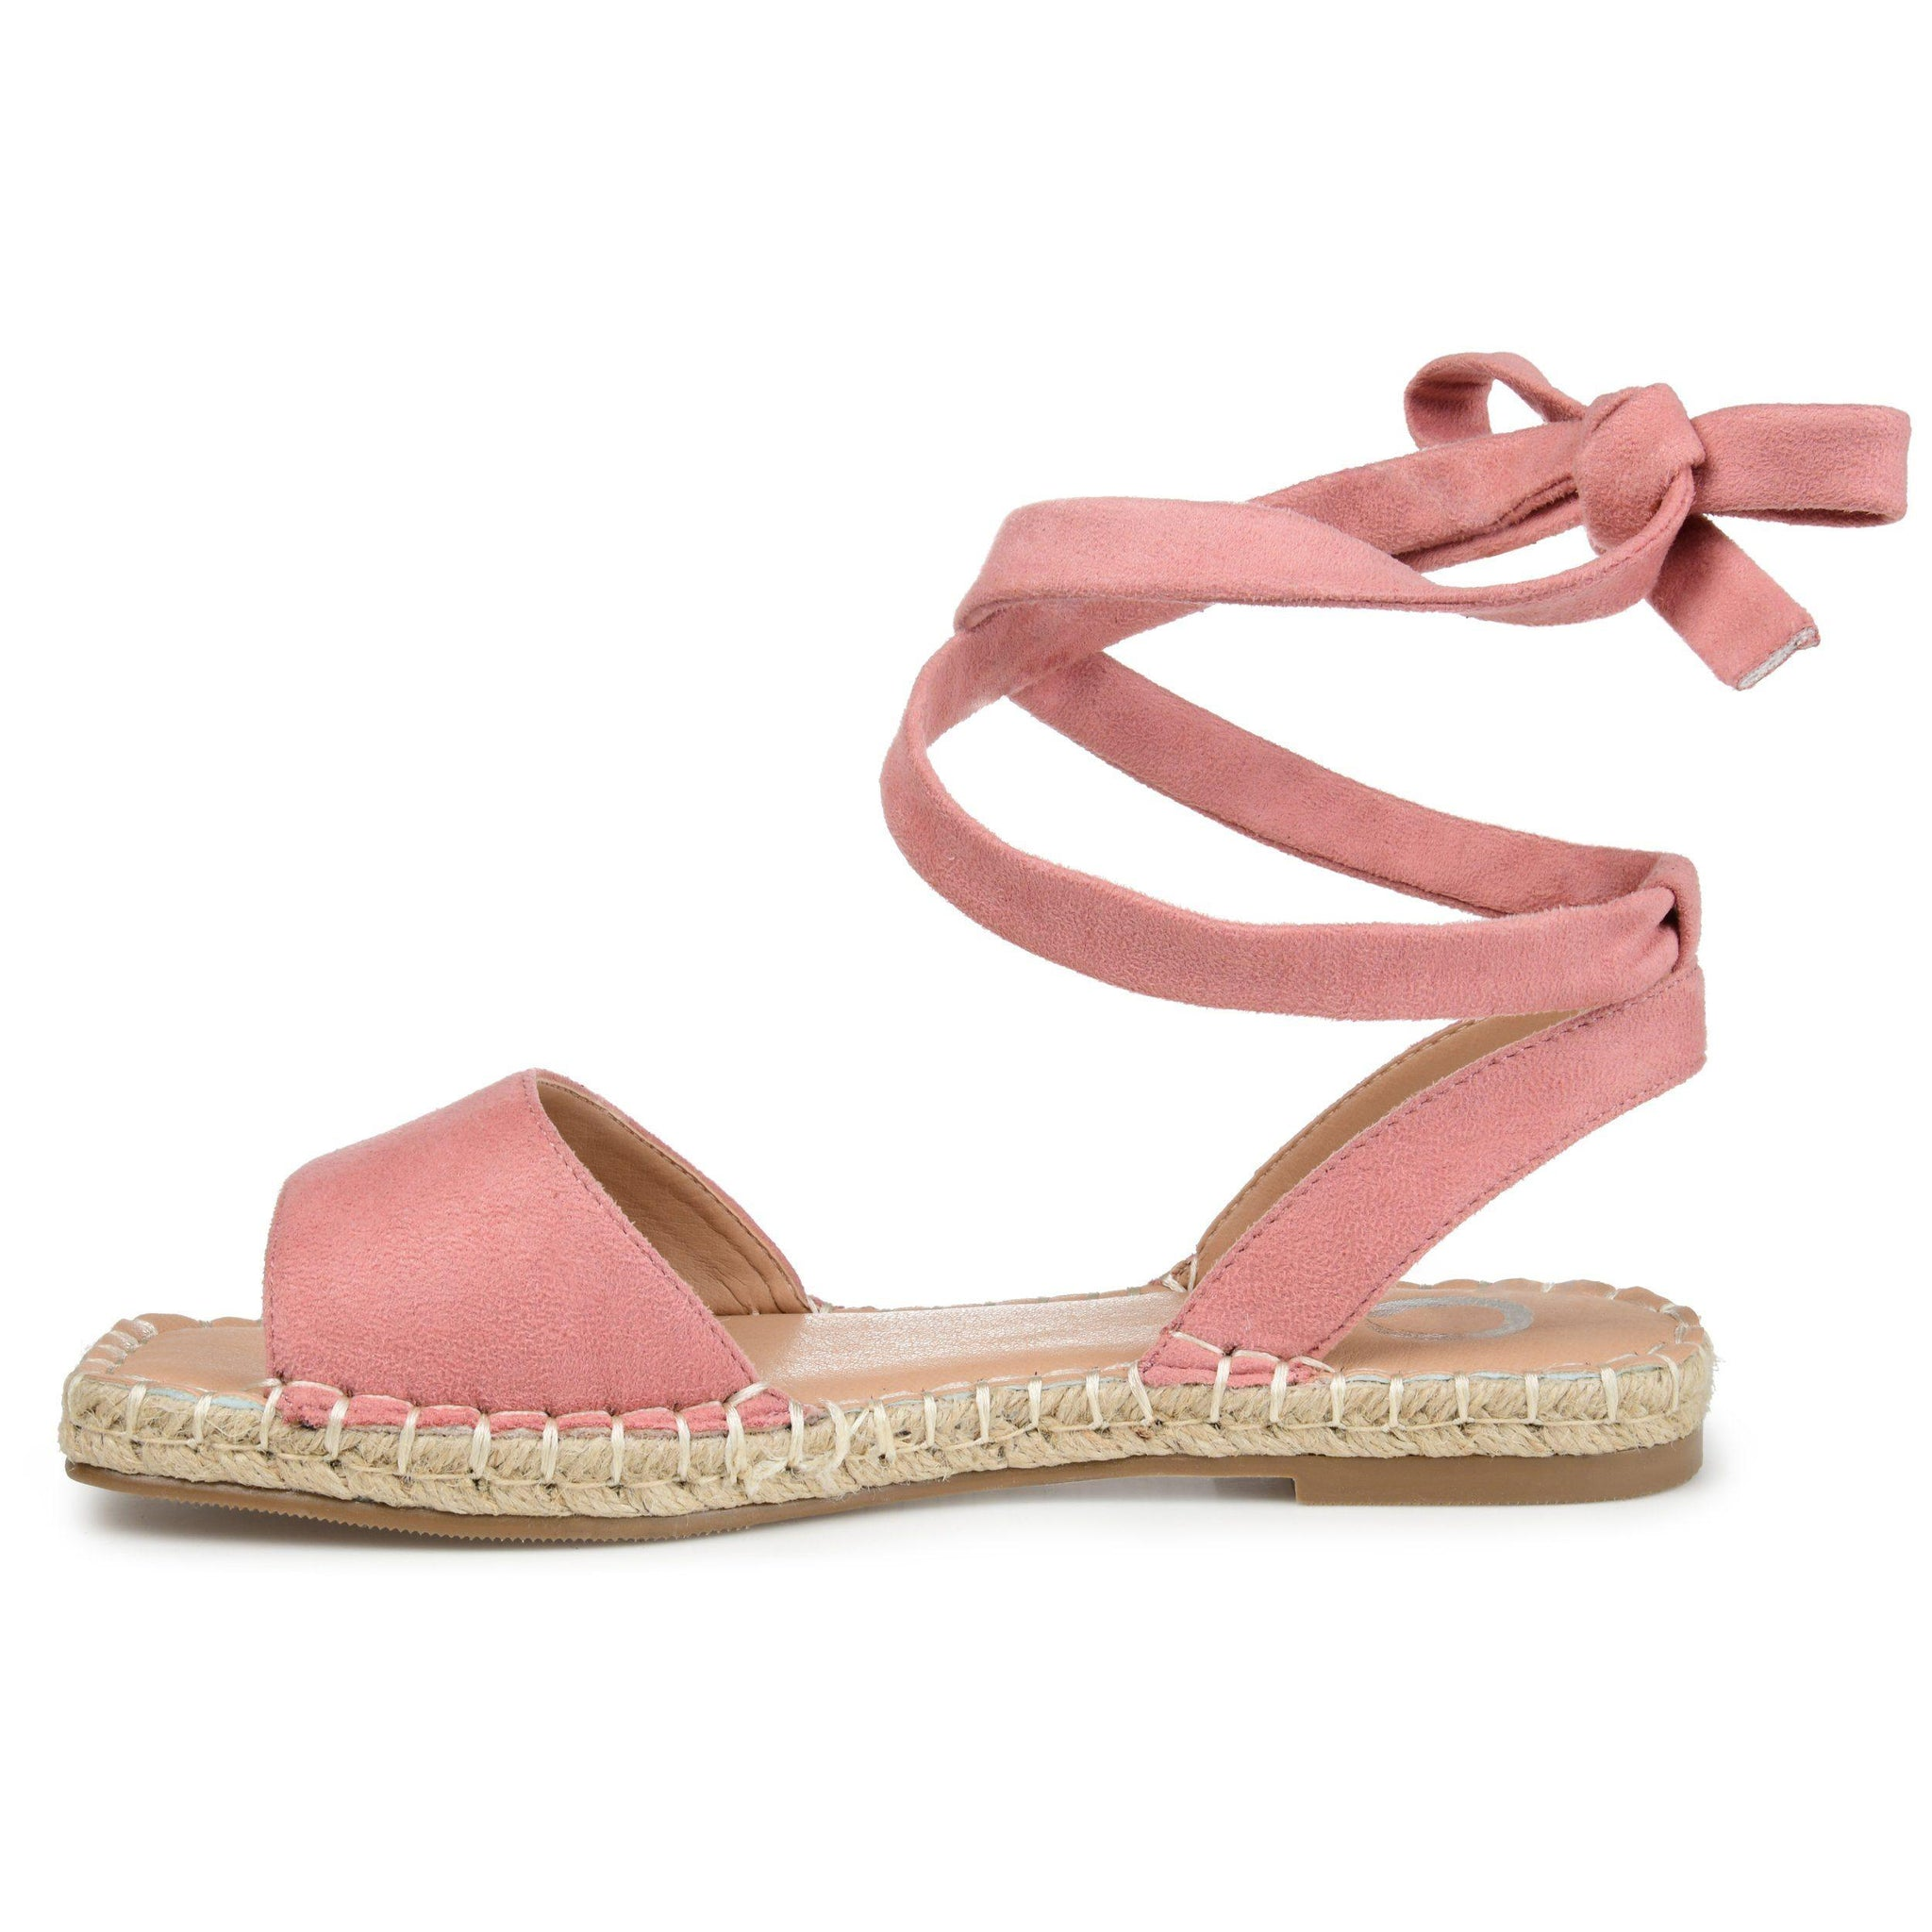 EMELIE SHOES Journee Collection